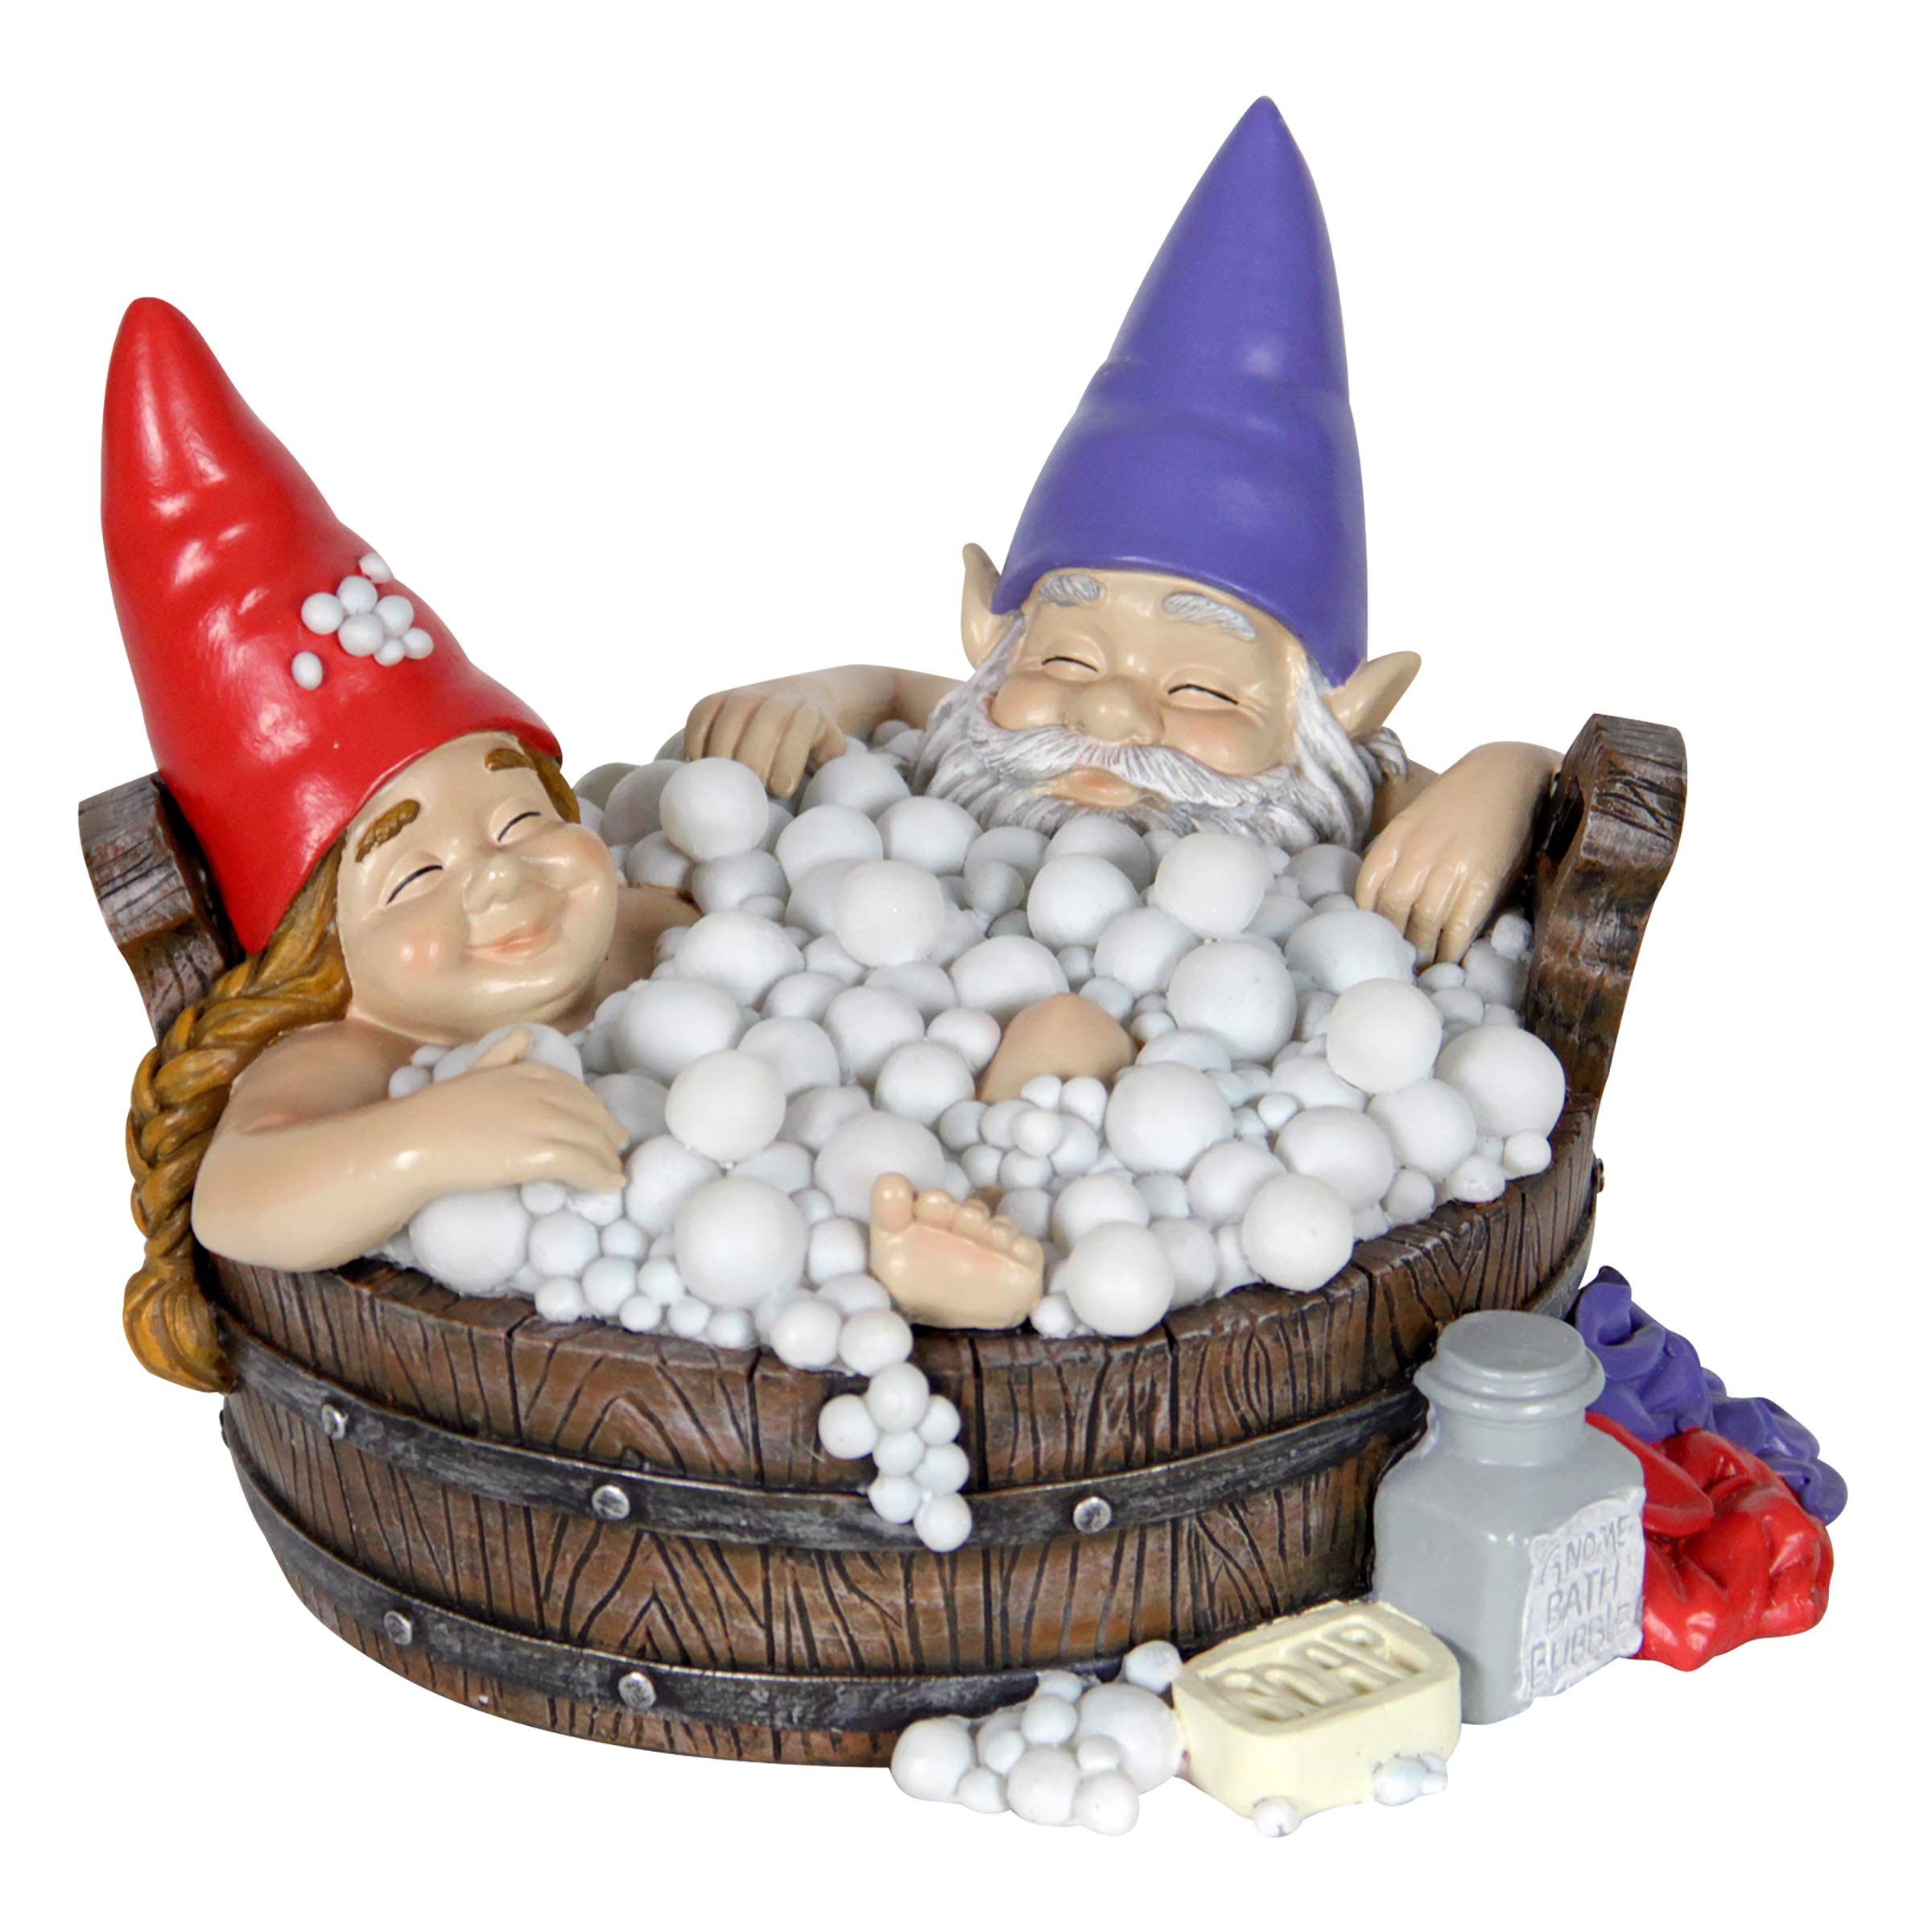 Exhart Solar Good Times Bubble Bath Garden Gnomes - Funny Gnome Couple in Bathtub w/Solar-Powered LED Lights - Bath Time Resin Gnomes Statue, Boy & Girl Gnome Garden Statue, 8.7'' L x 8.7'' W x 6.7'' H by Exhart